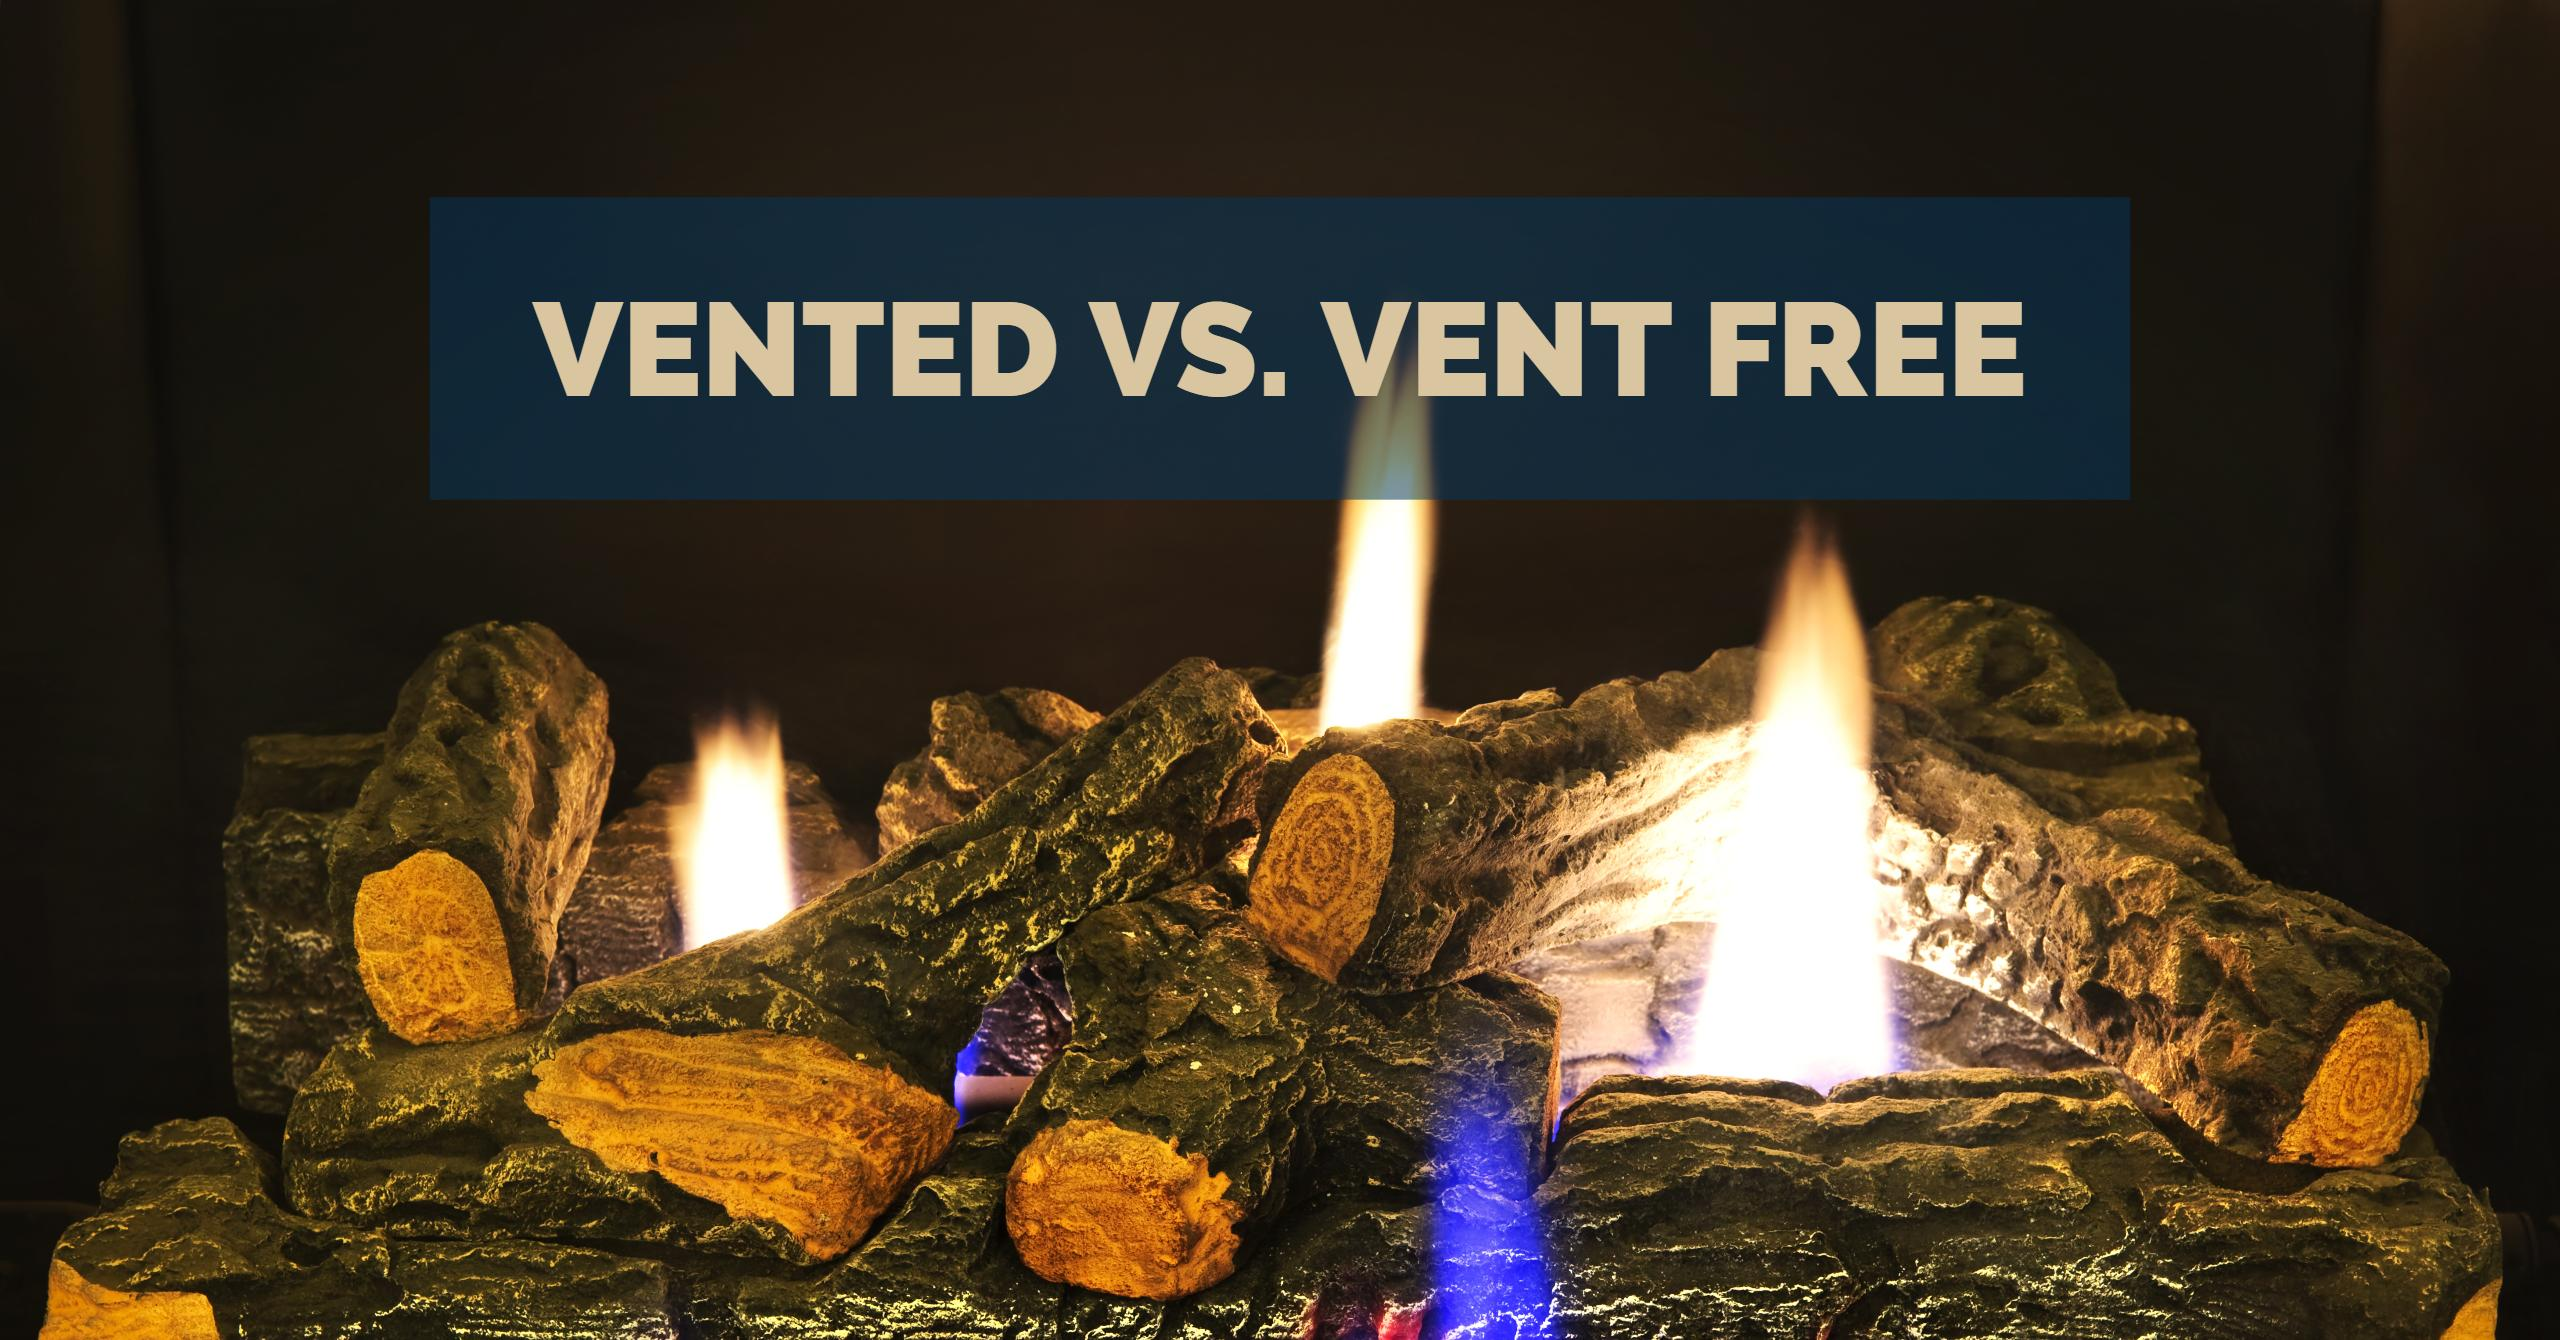 the differences between vented and vent free gas logs